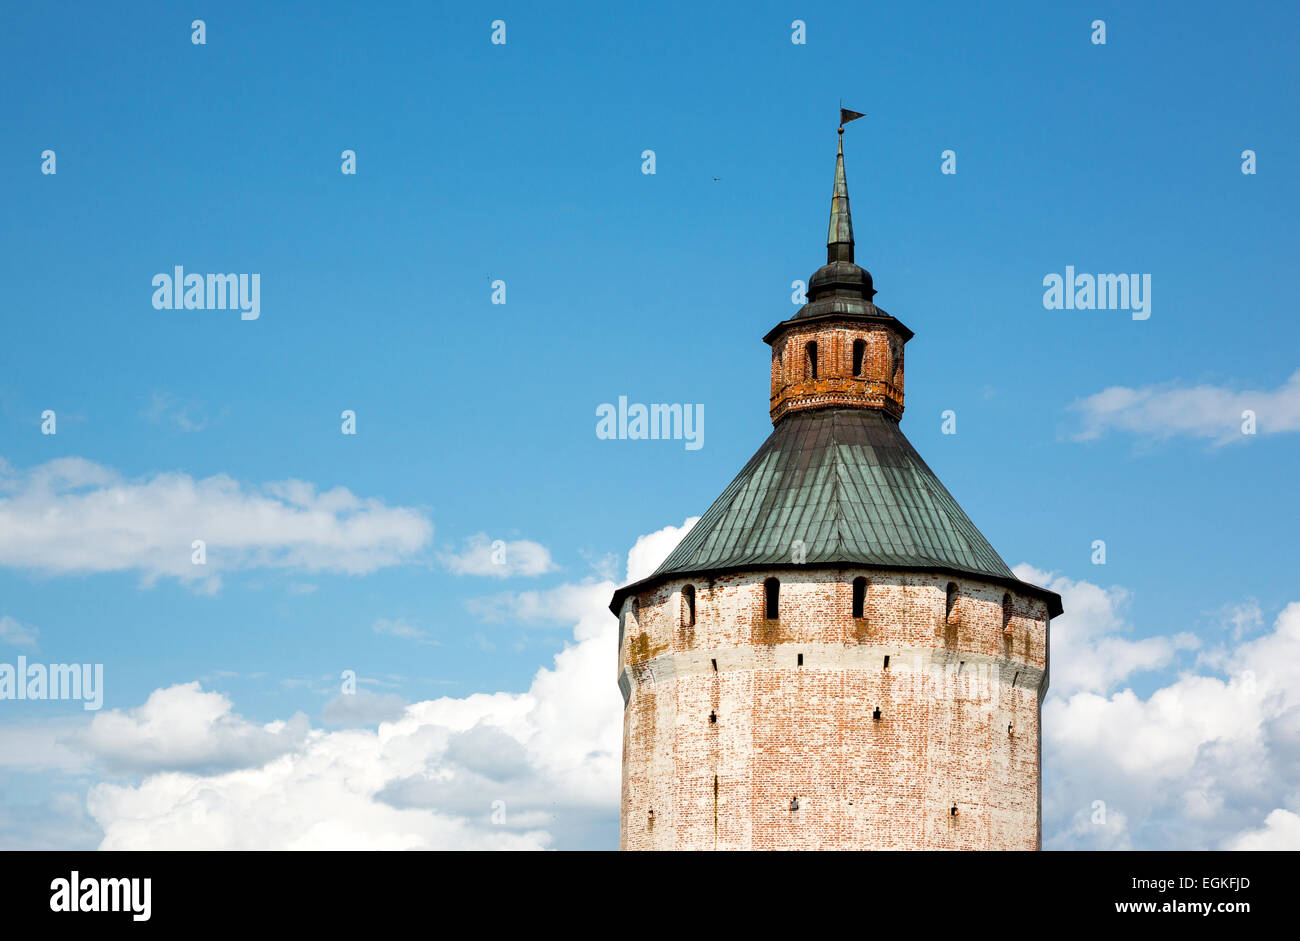 Russia, Goritsy, the tower of the Kirillo Belozersky Monastry - Stock Image